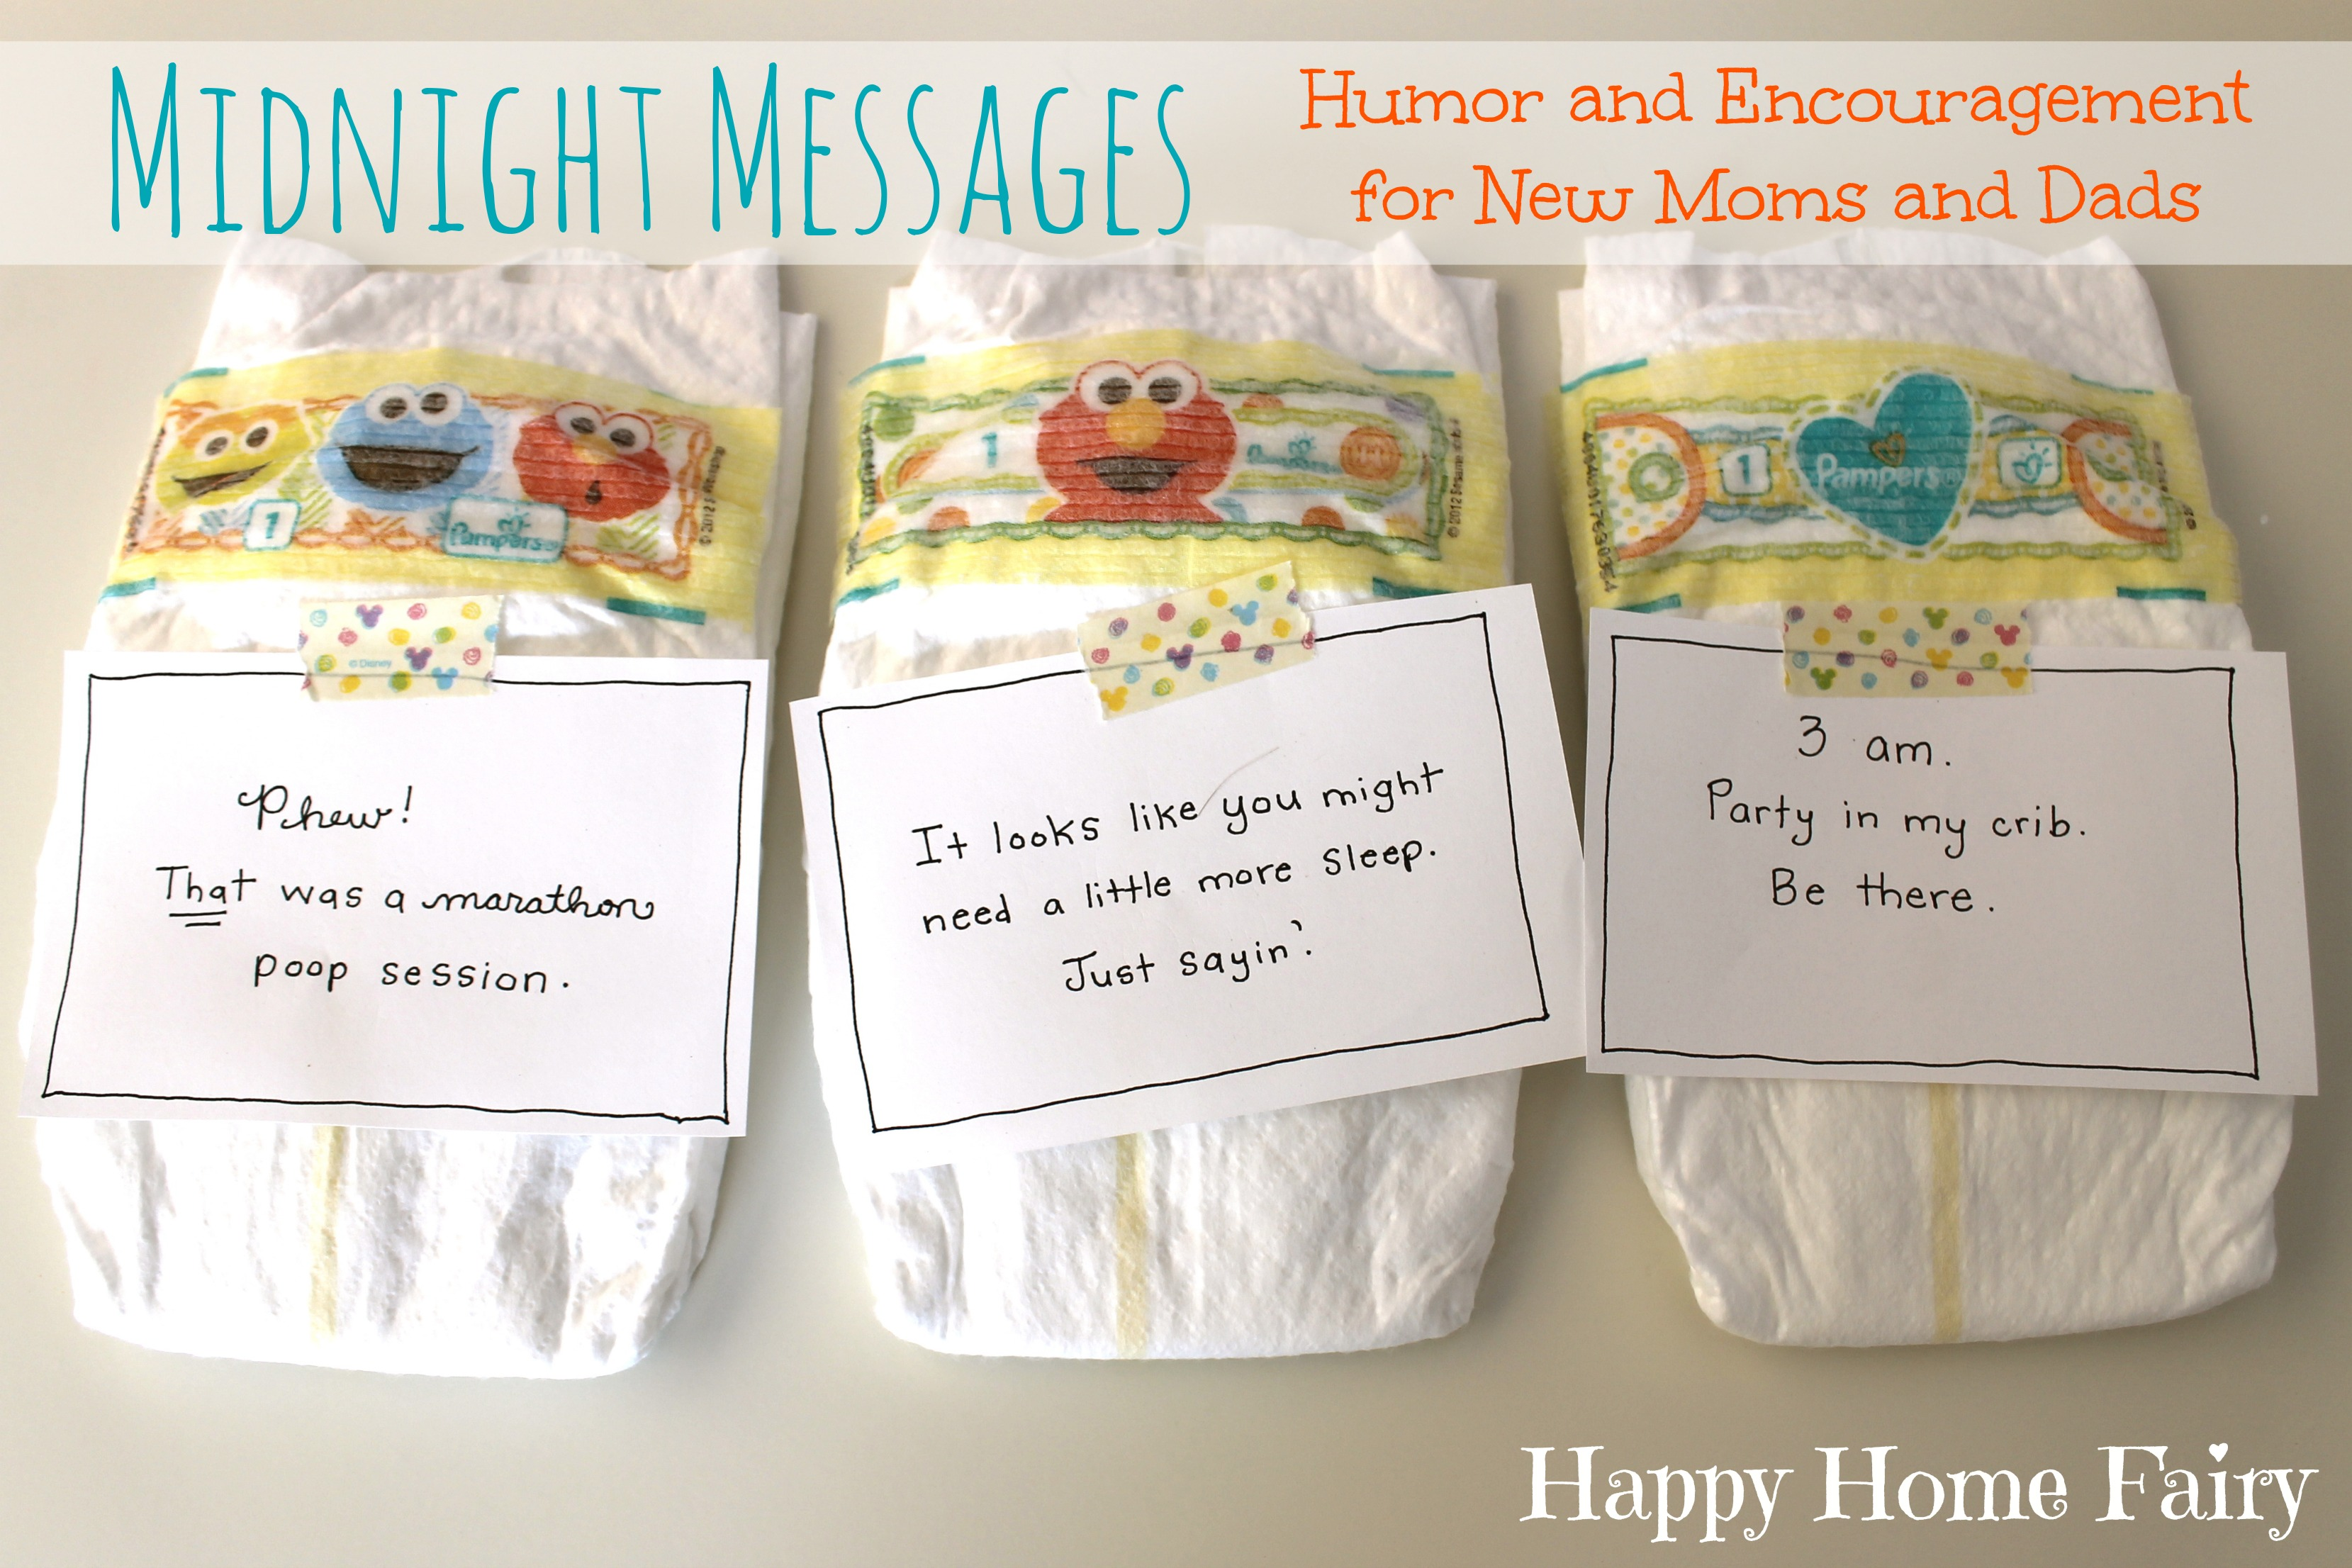 graphic about Late Night Diaper Messages Free Printable called Midnight Messages for Fresh Mommies - Totally free Printable! - Satisfied